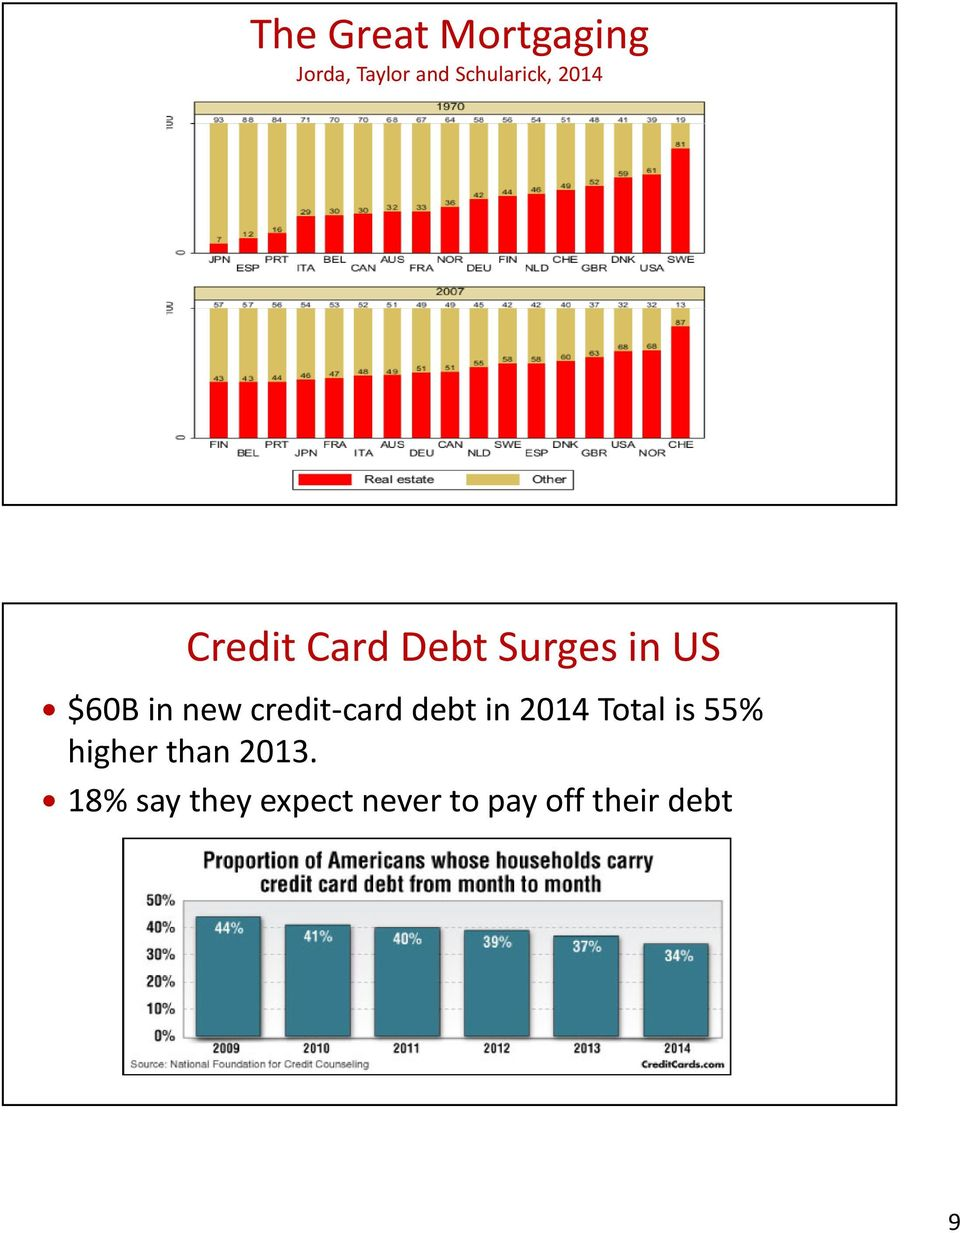 credit card debt in 2014 Total is 55% higher than